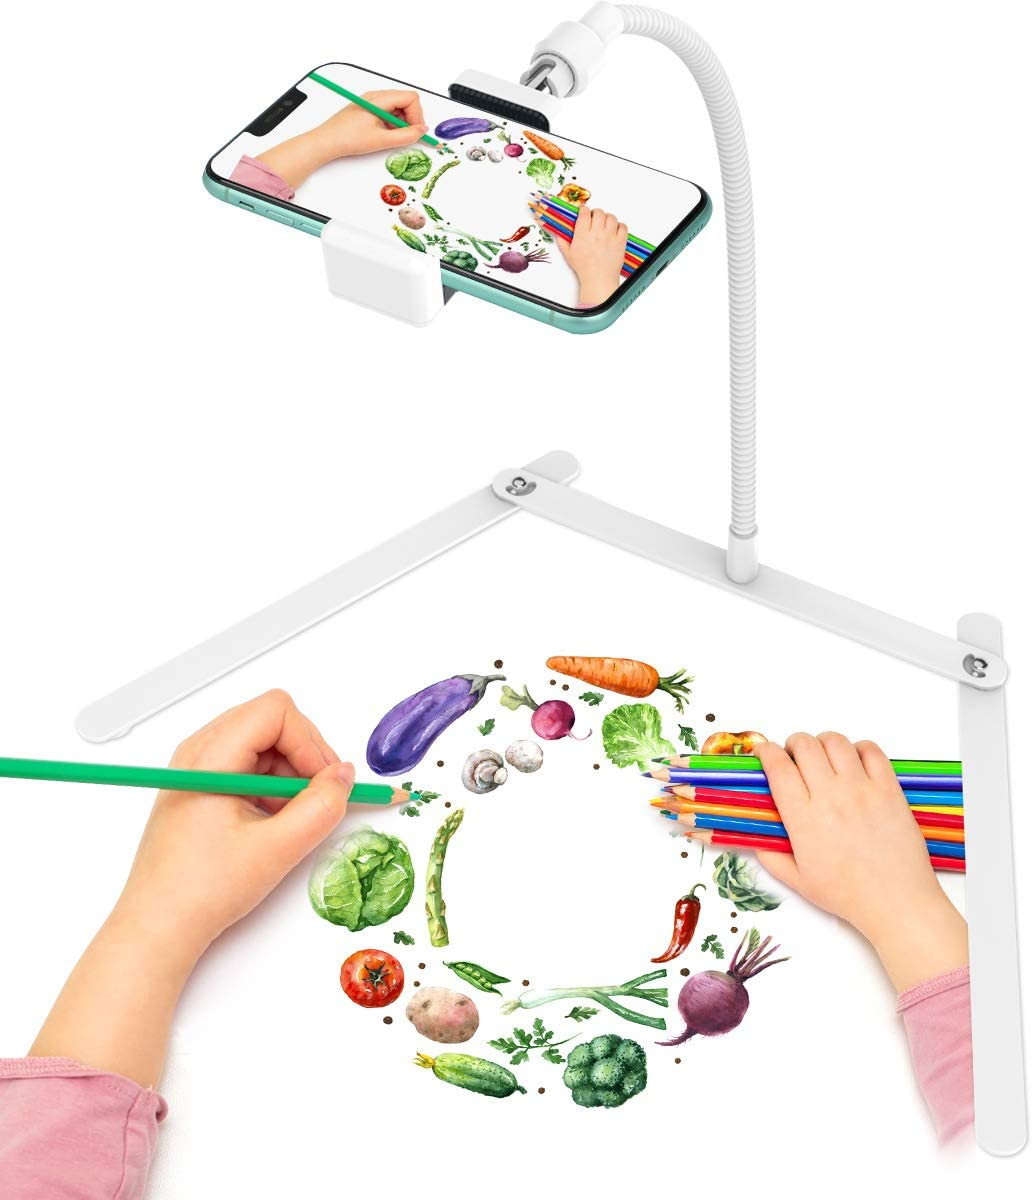 Adjustable Gooseneck Cellphone Holder,Overhead Phone Mount,Table Top Teaching Online Stand for Live Streaming and Online Video and Food Crafting Demo Drawing Sketching Recording(White)